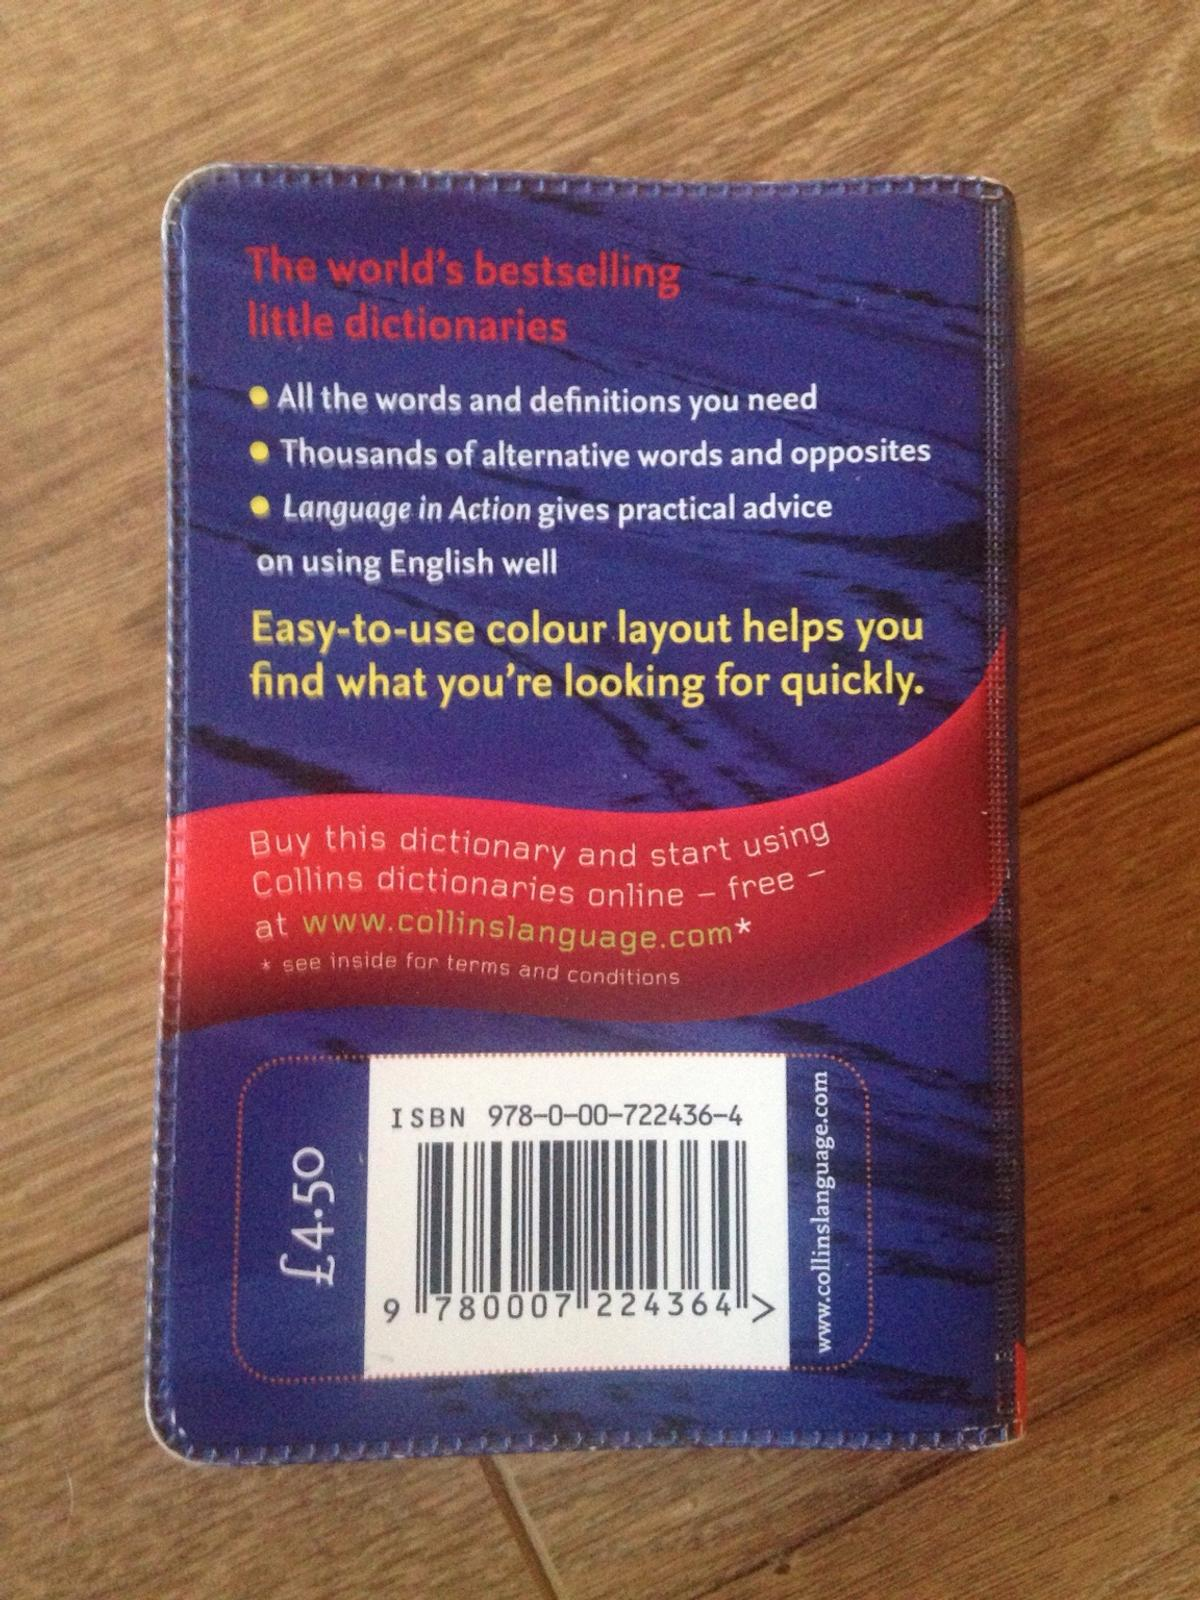 Collins Dictionary and Thesaurus in Rotherham for £1 00 for